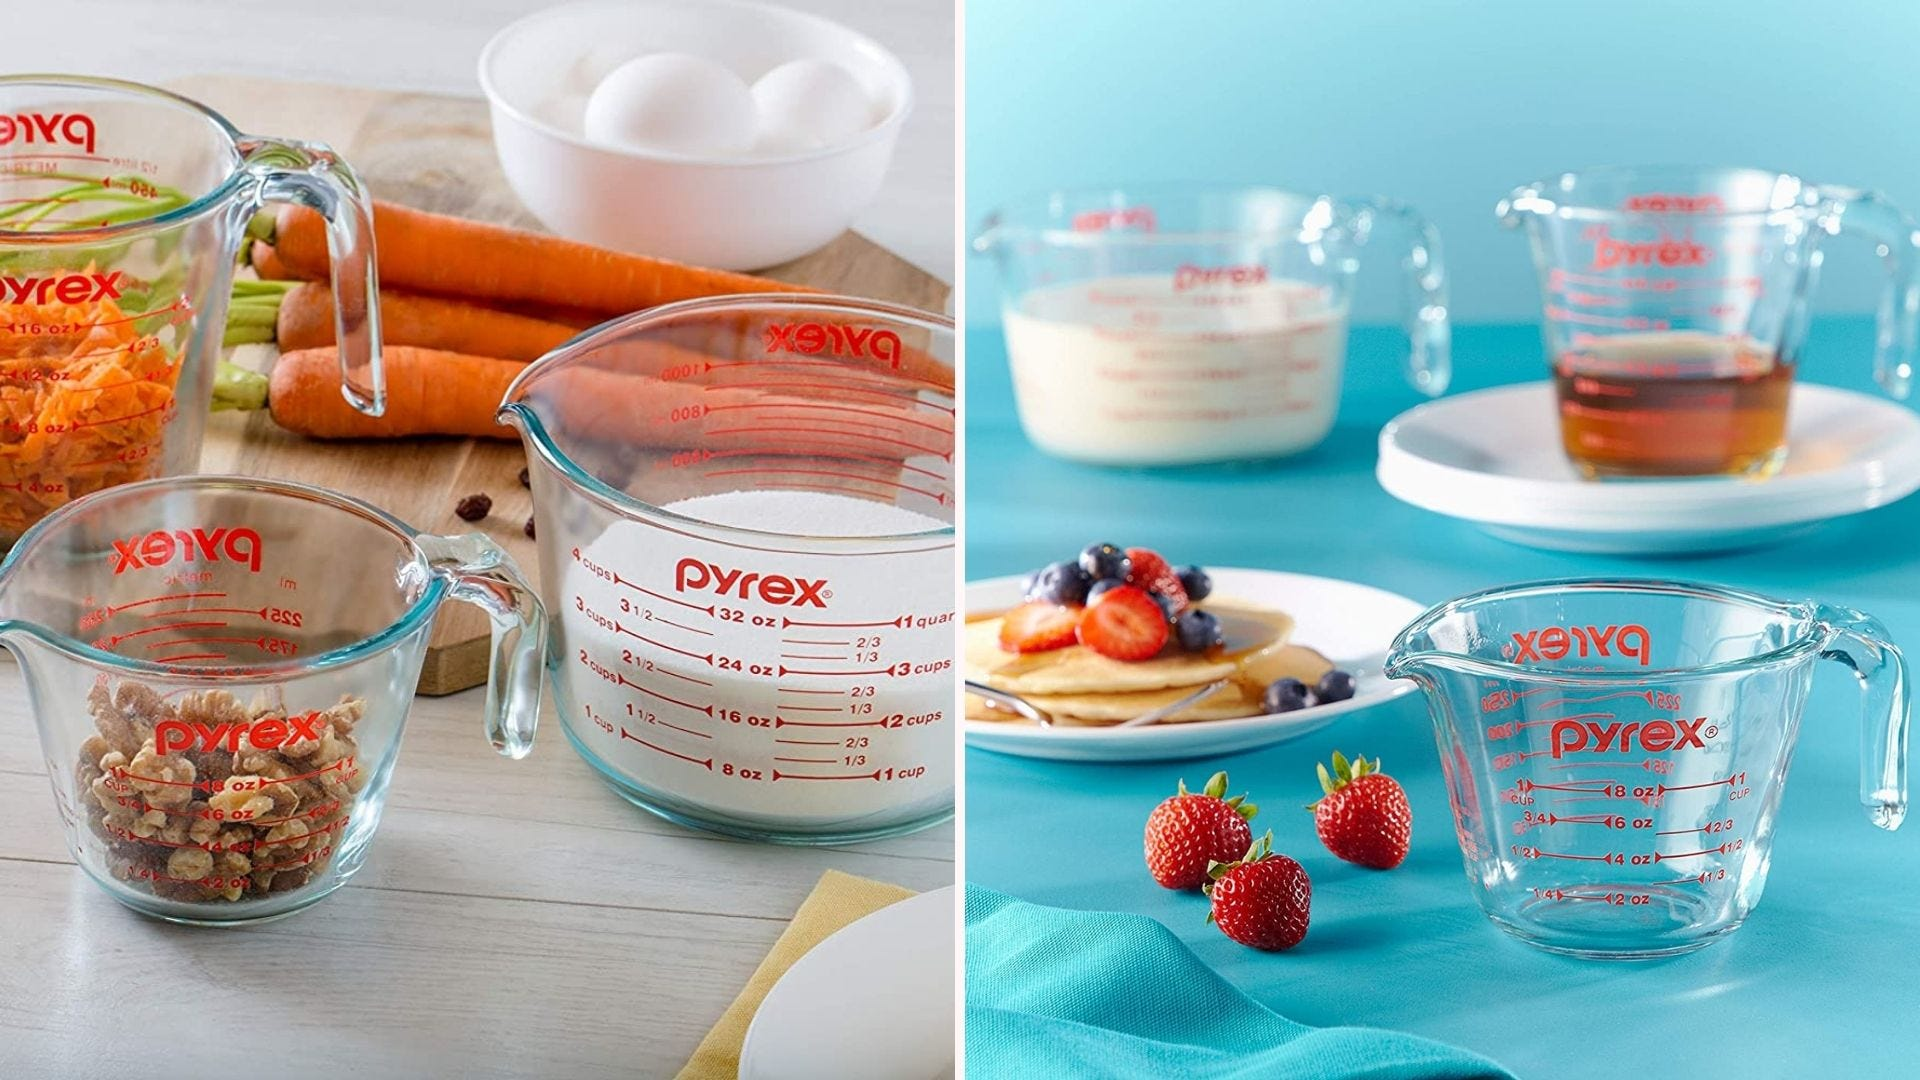 A set of glass measuring cups filled with ingredients